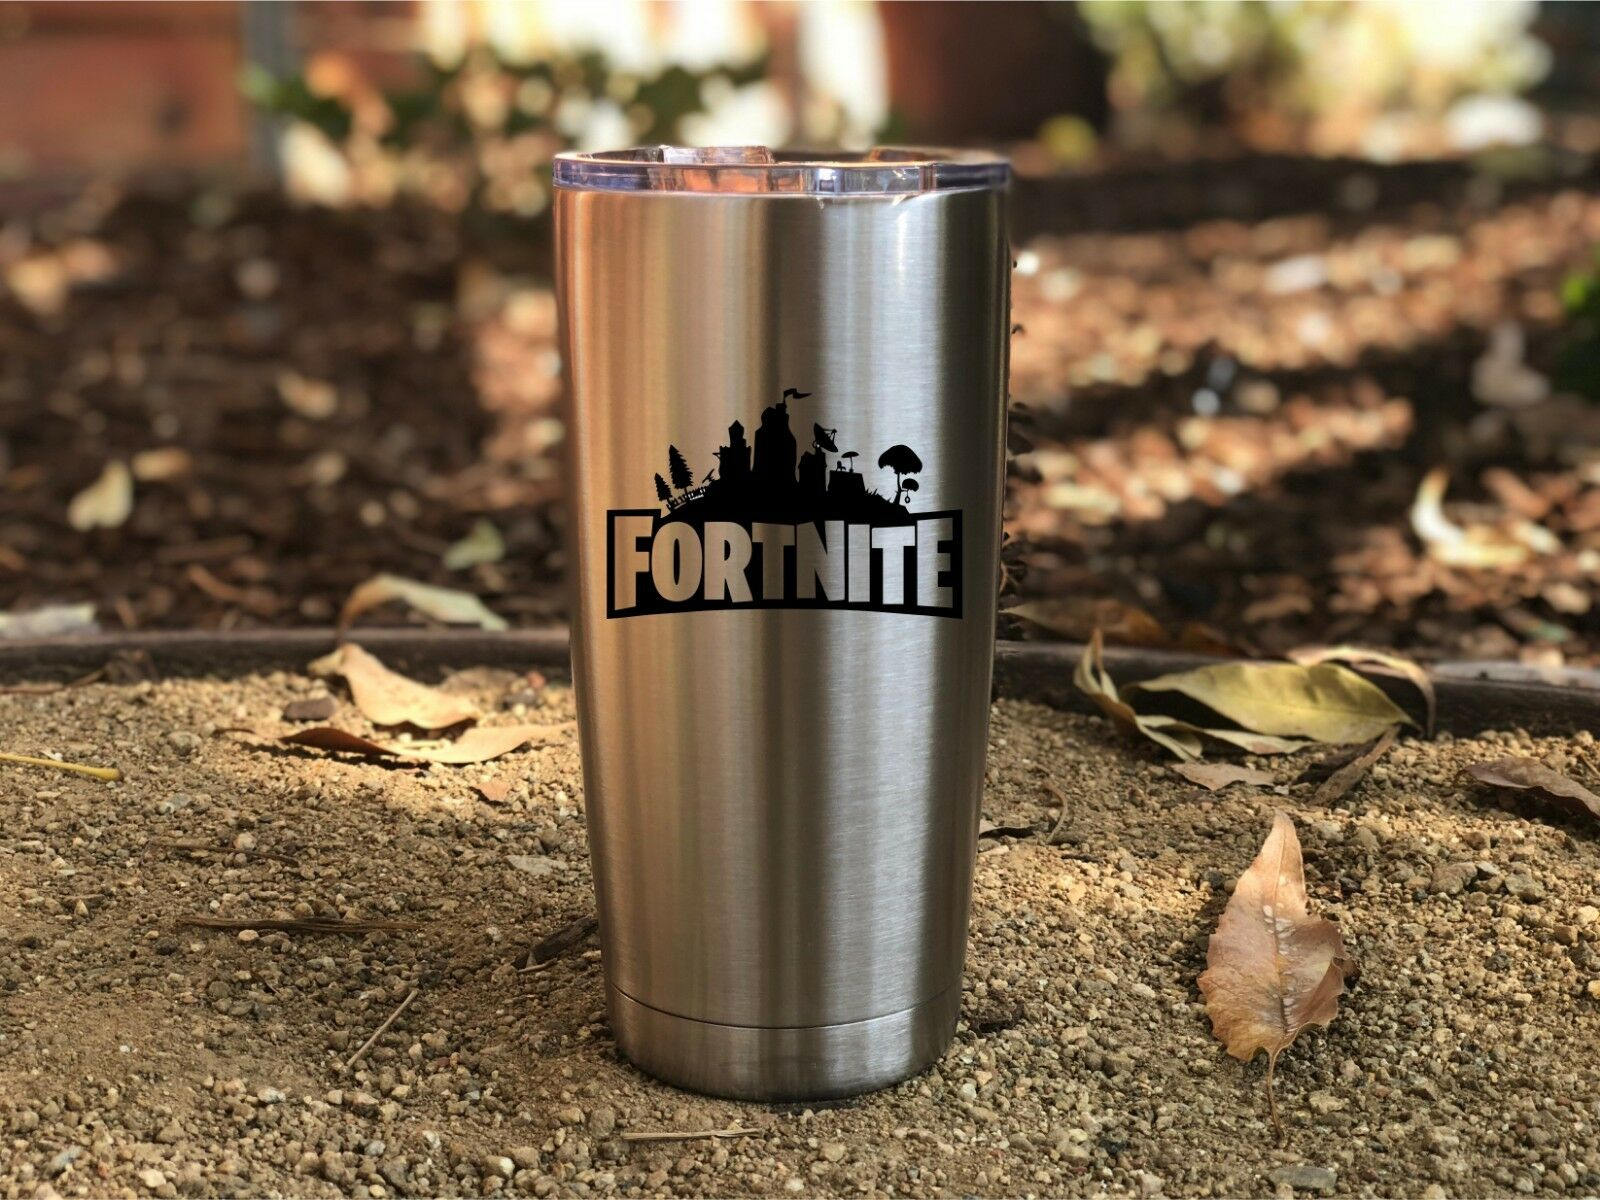 Fortnite Inspired Insulated 20 oz Tumbler, Victory Royale